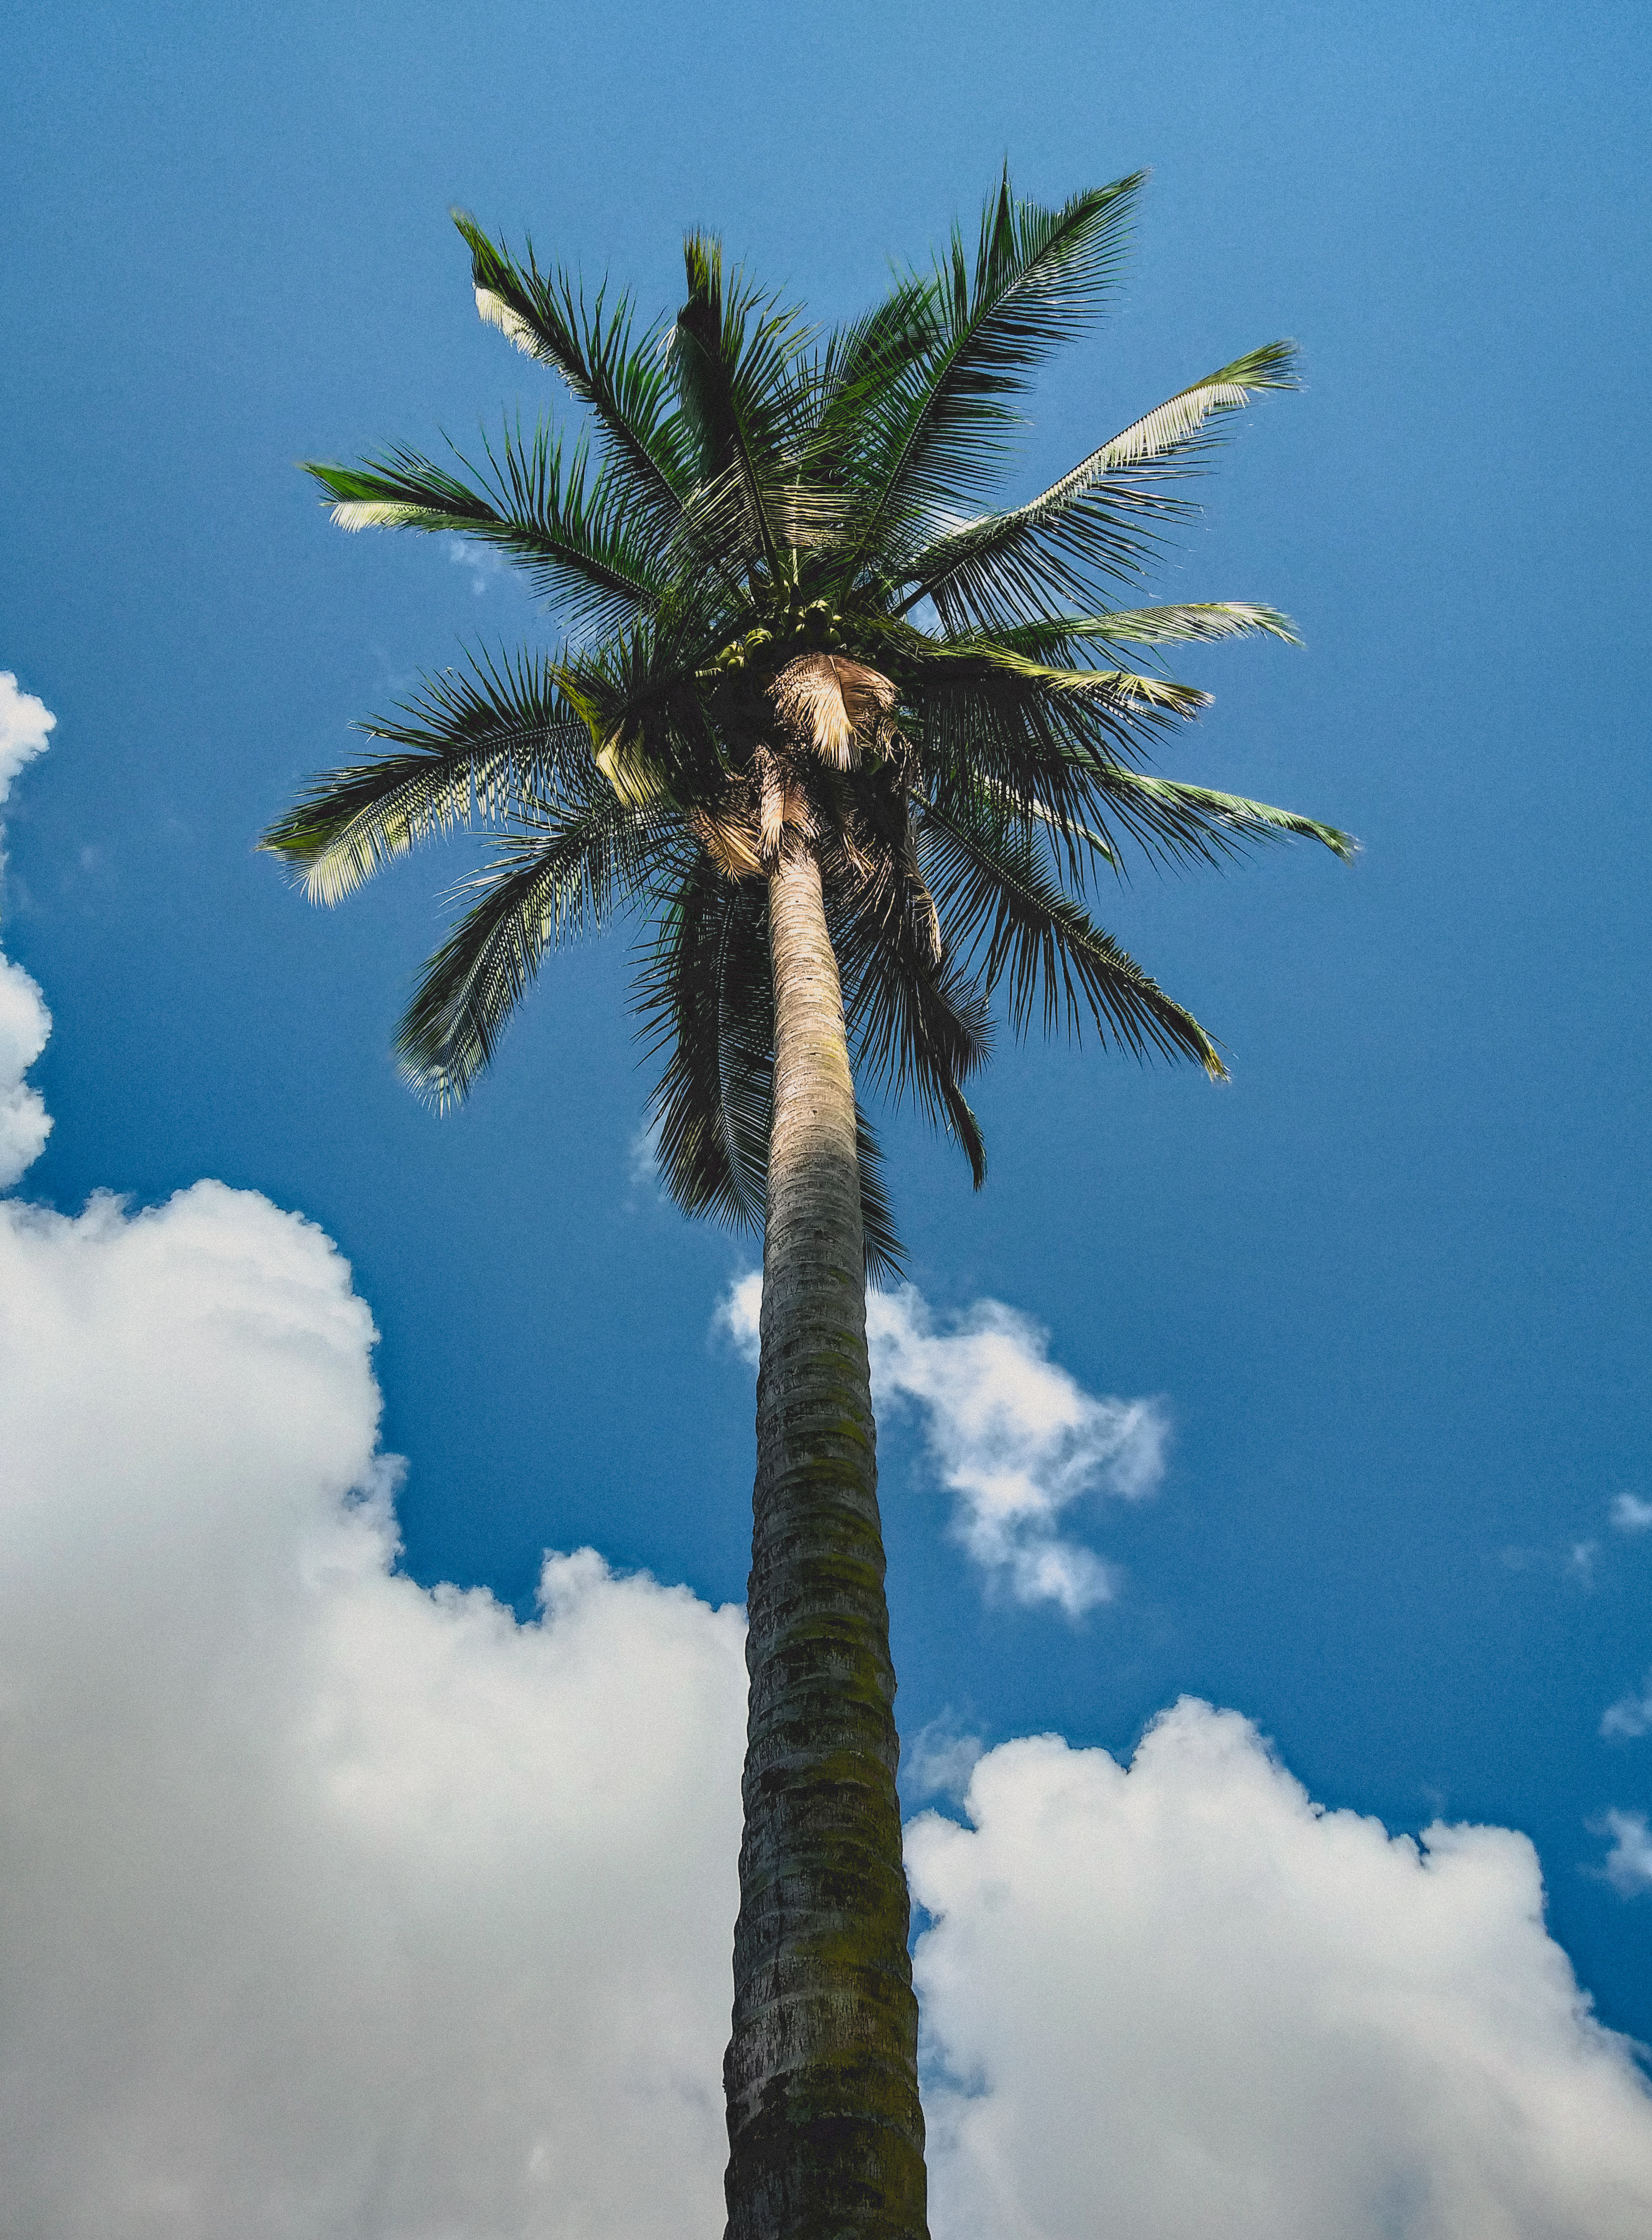 Low angle photography of coconut palm tree under blue sky